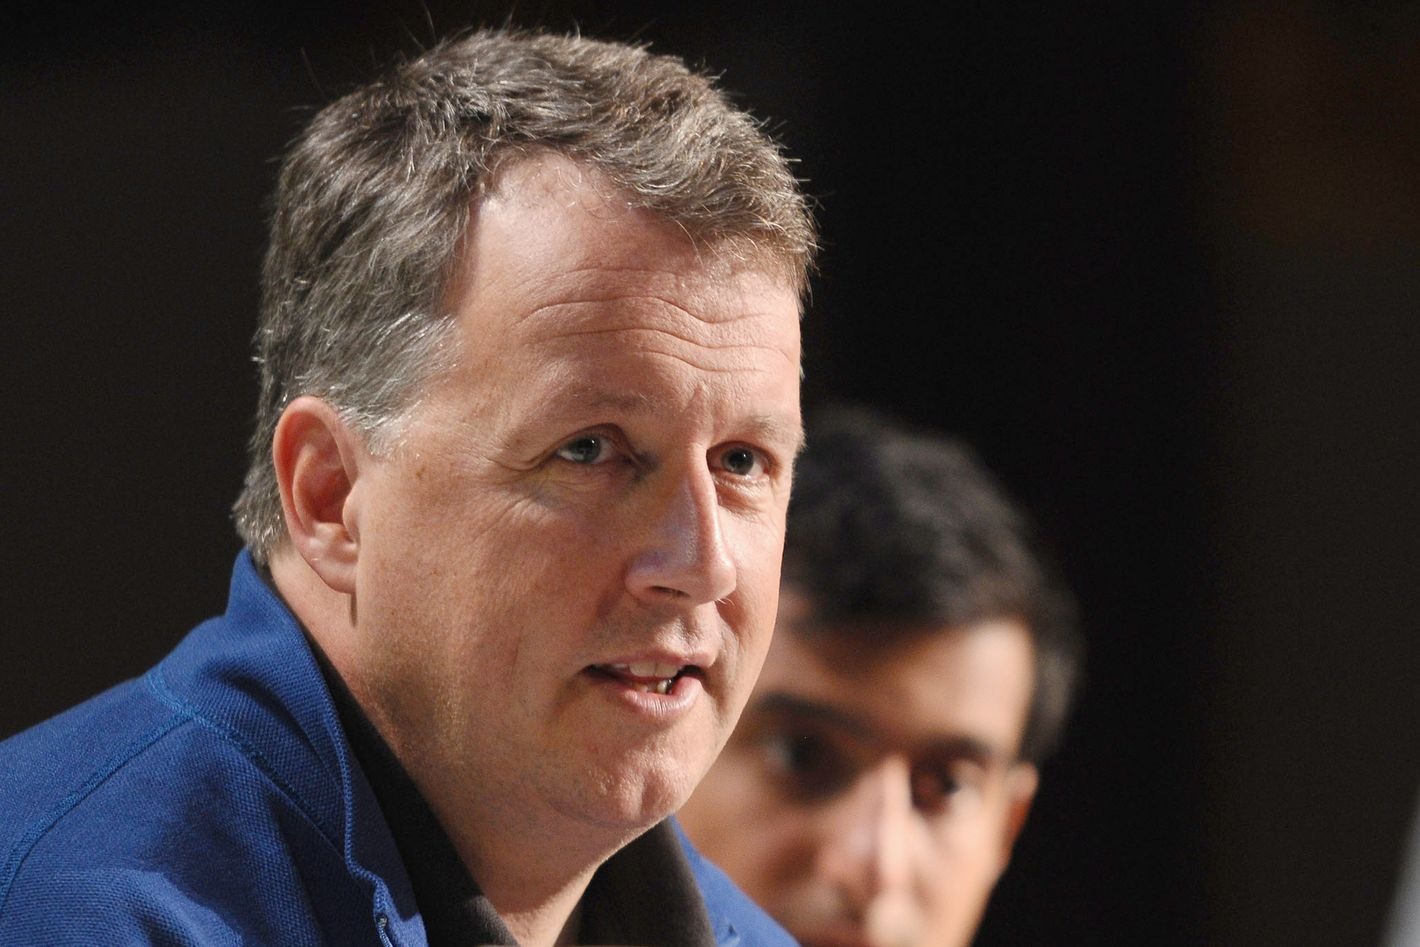 SAN FRANCISCO, CA - SEPTEMBER 12:  Paul Graham speaks onstage at Day 1 of TechCrunch Disrupt SF 2011 held at the San Francisco Design Center Concourse on September 12, 2011 in San Francisco, California.  (Photo by Araya Diaz/Getty Images for TechCrunch)